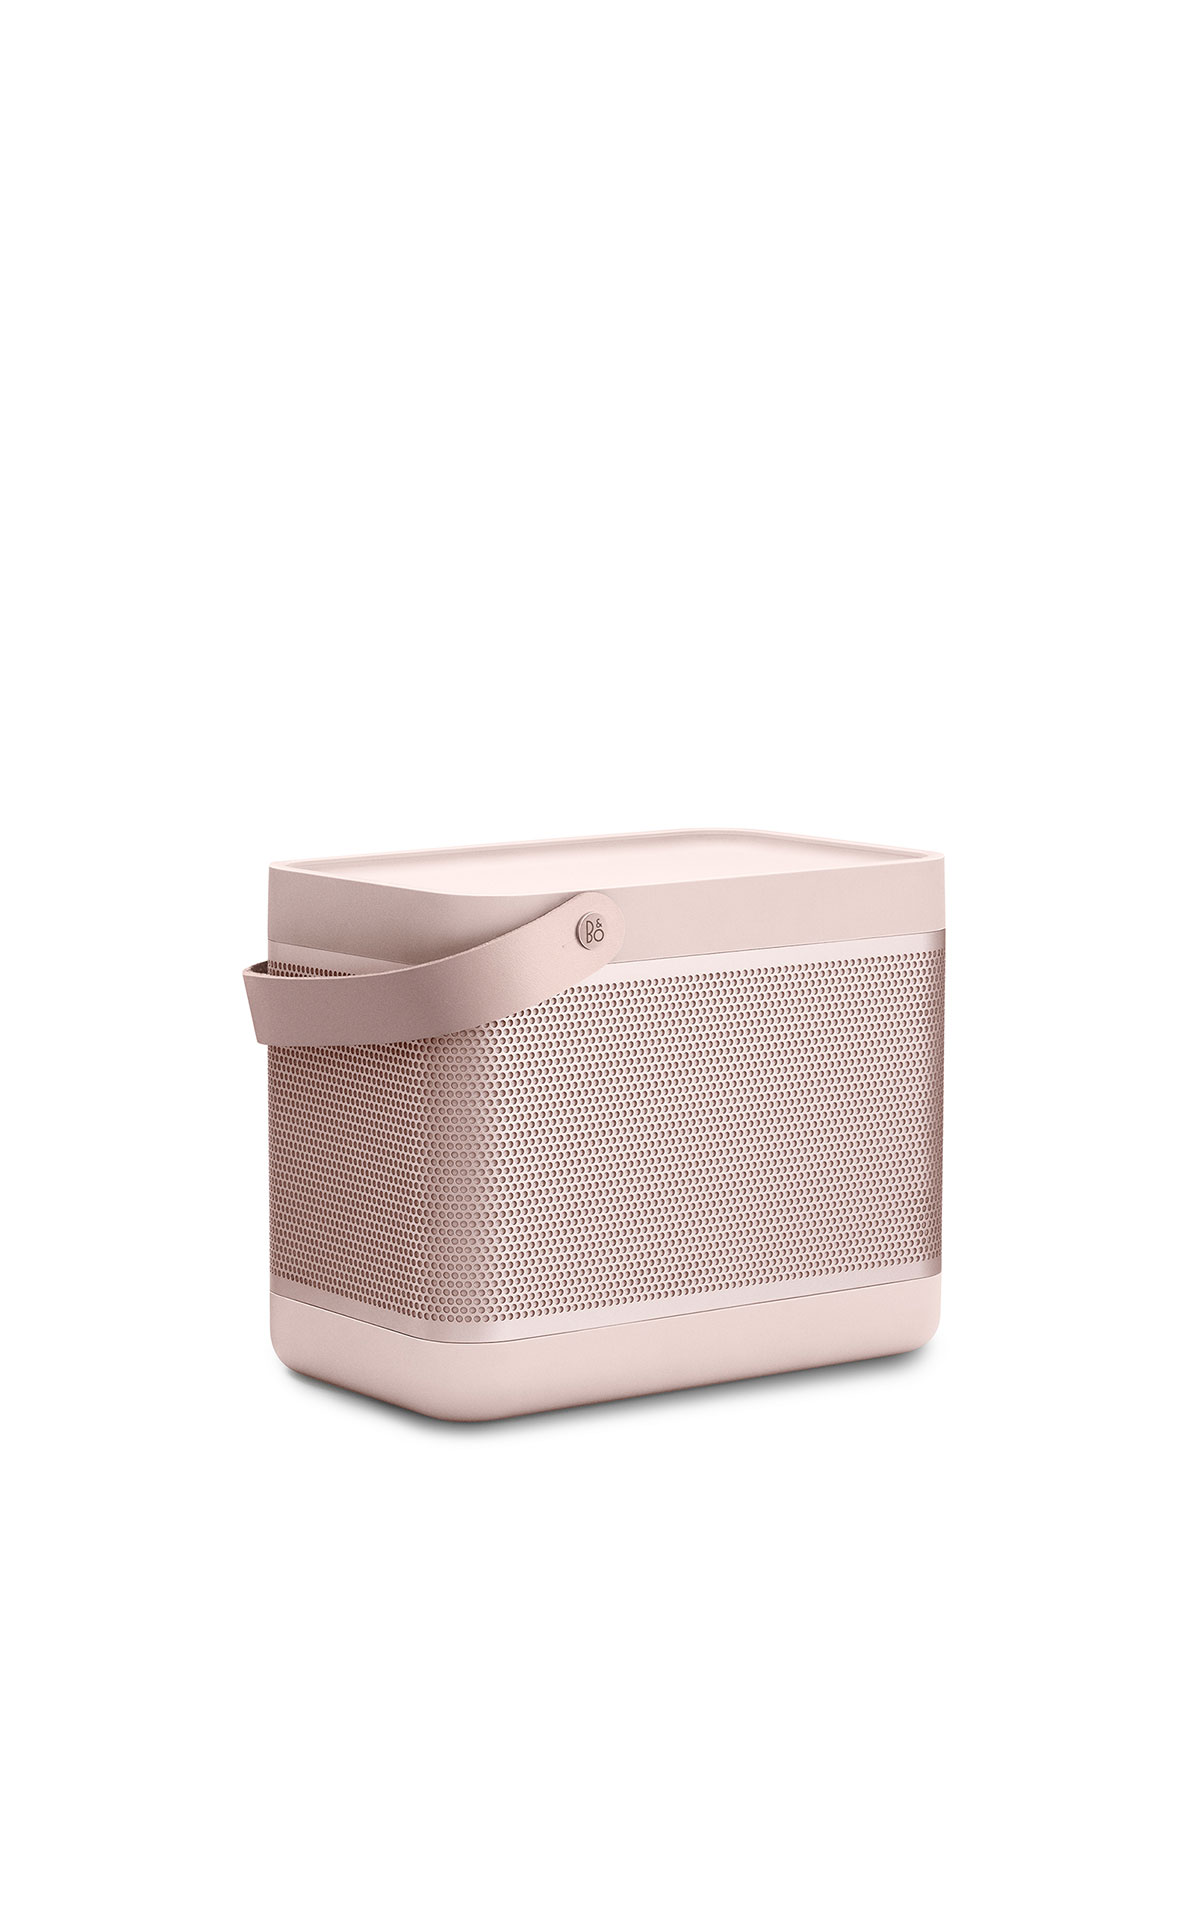 Bang & Olufsen Beolit 17 pink from Bicester Village